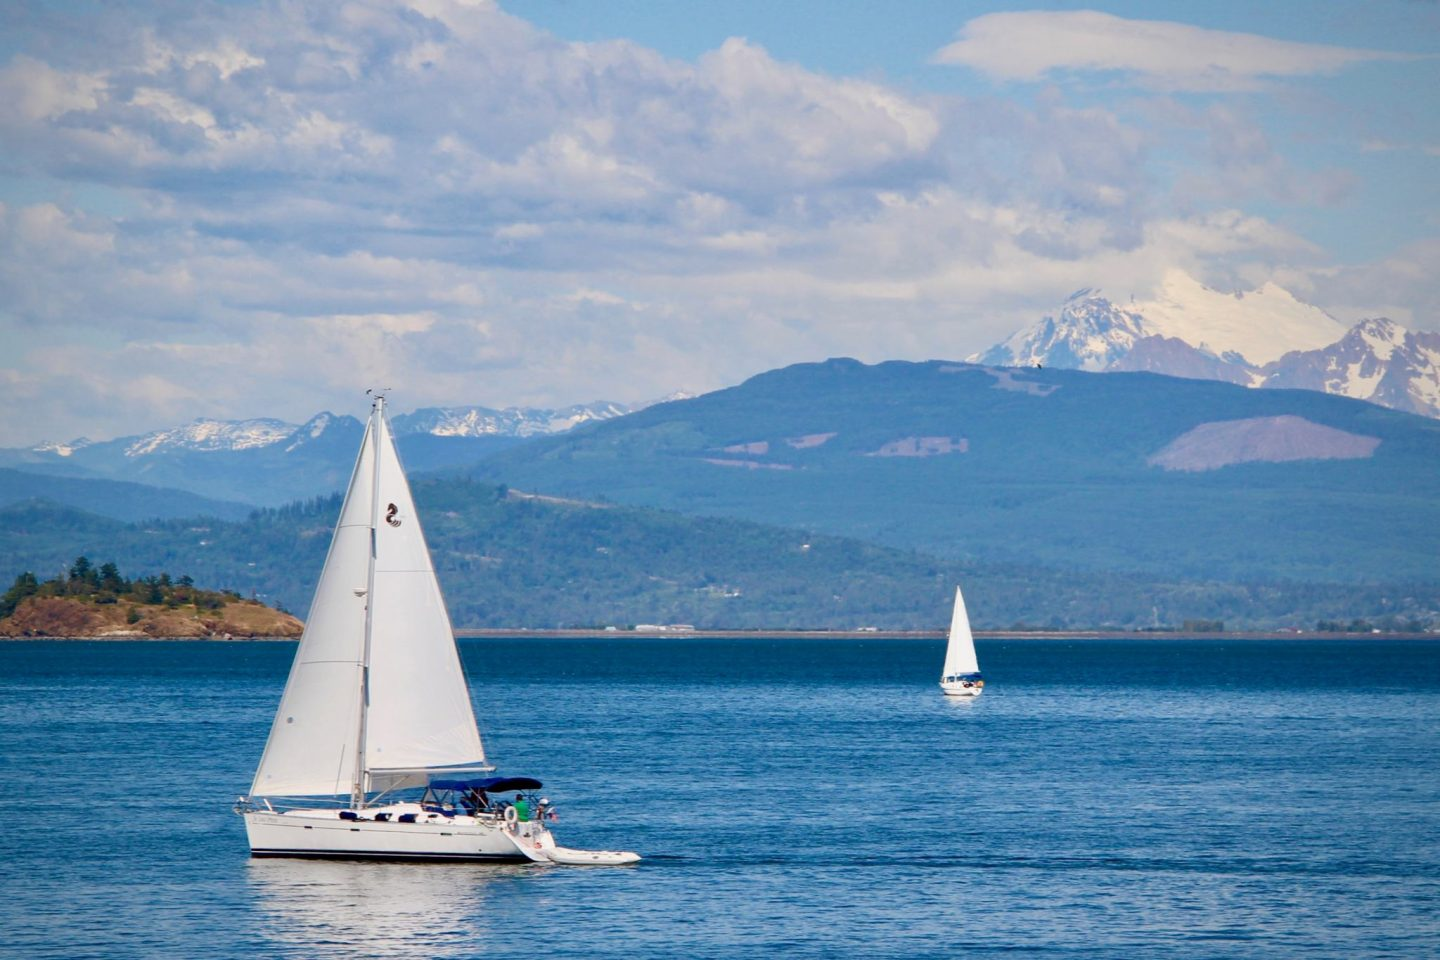 Sail boats near San Juan Islands, Washington | The Spectacular Adventurer